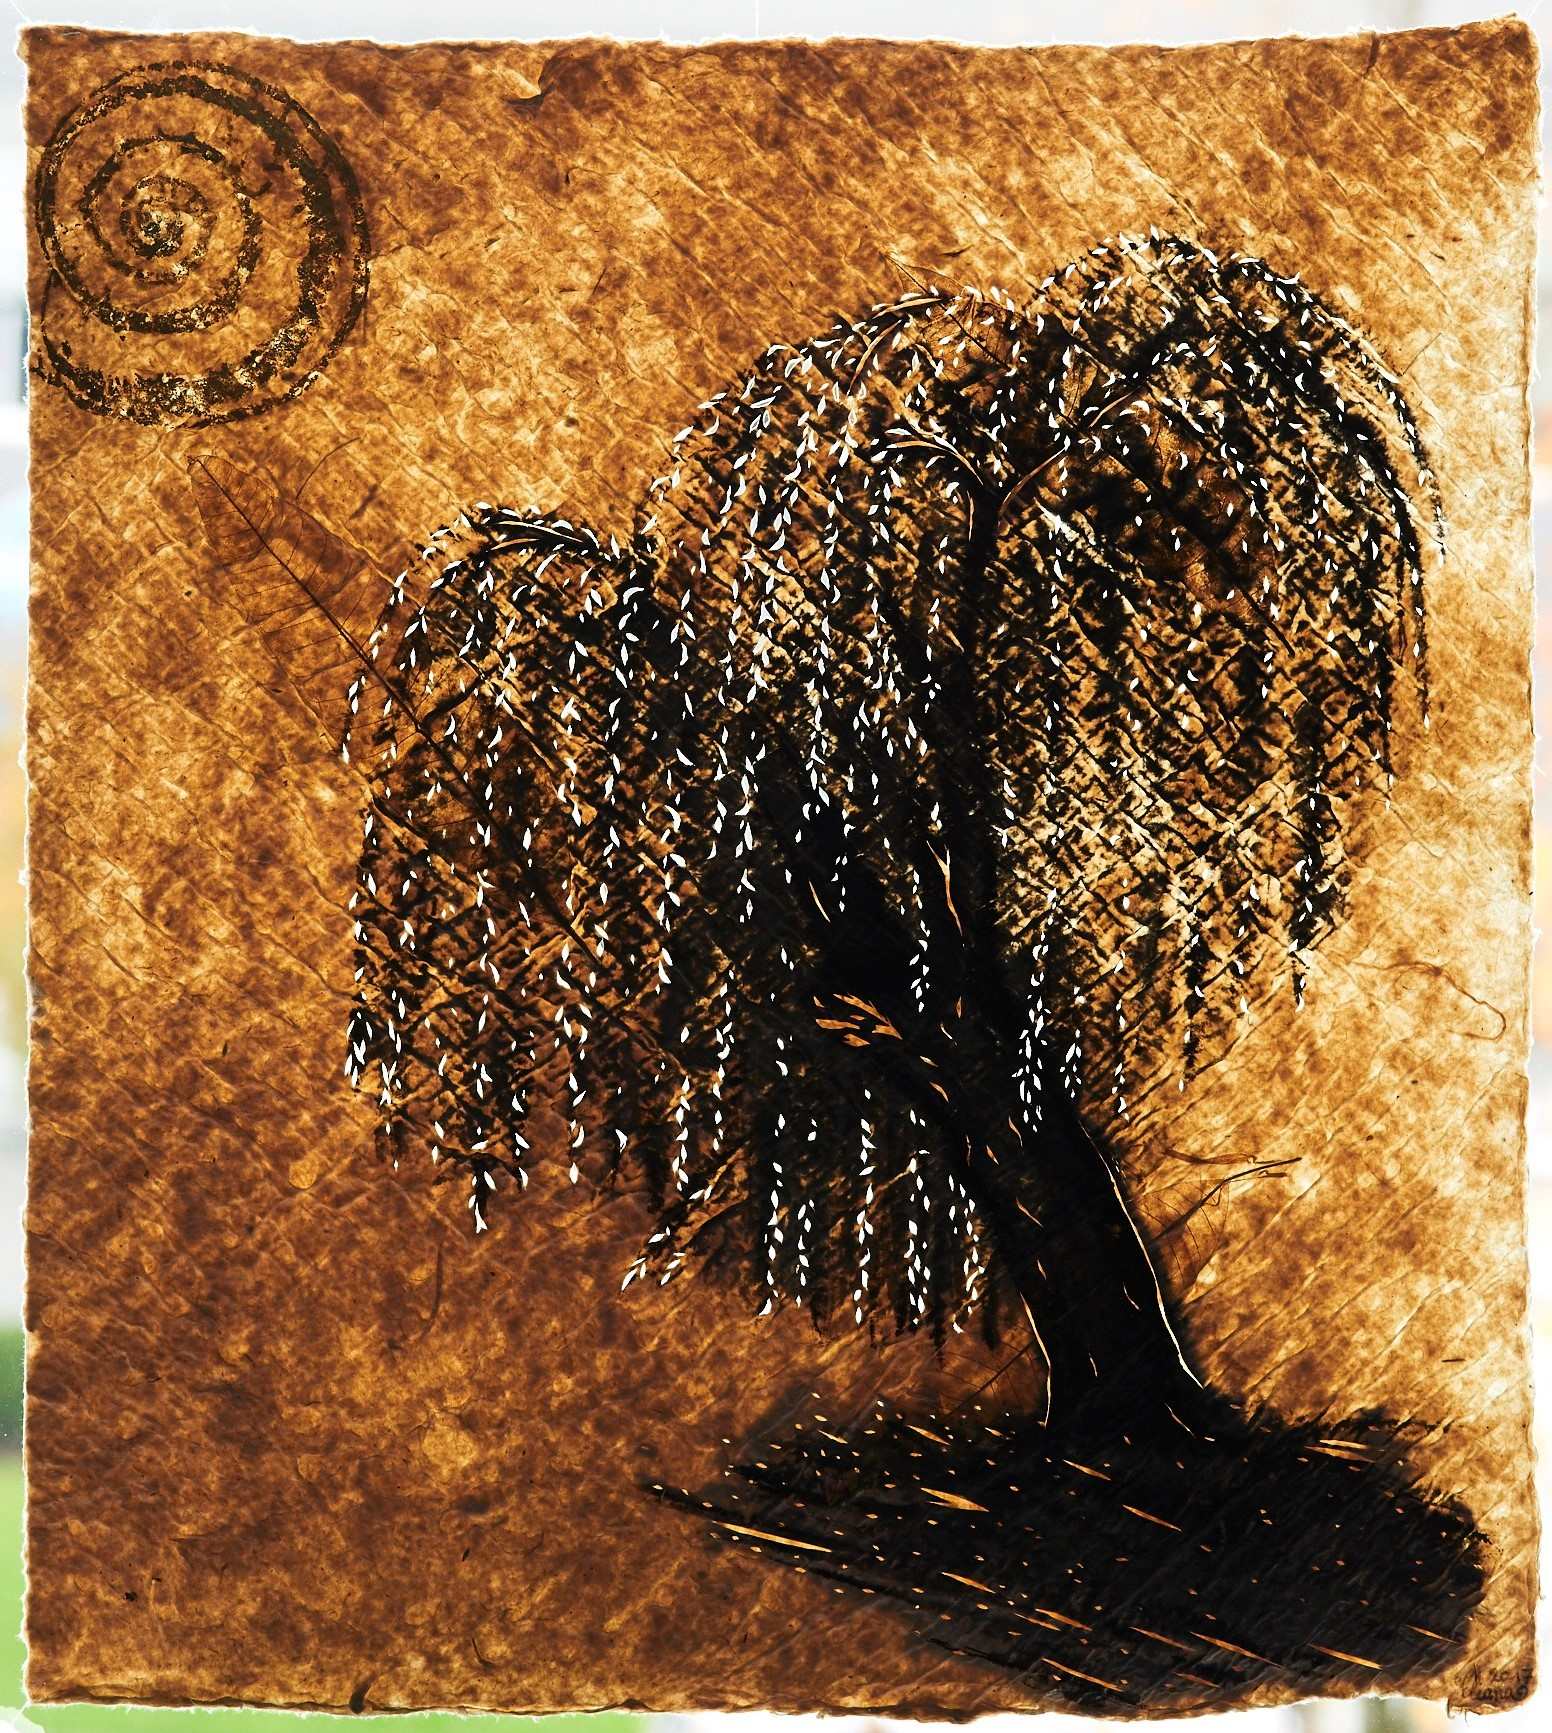 Study: Willow and Snail (Buchenwald)